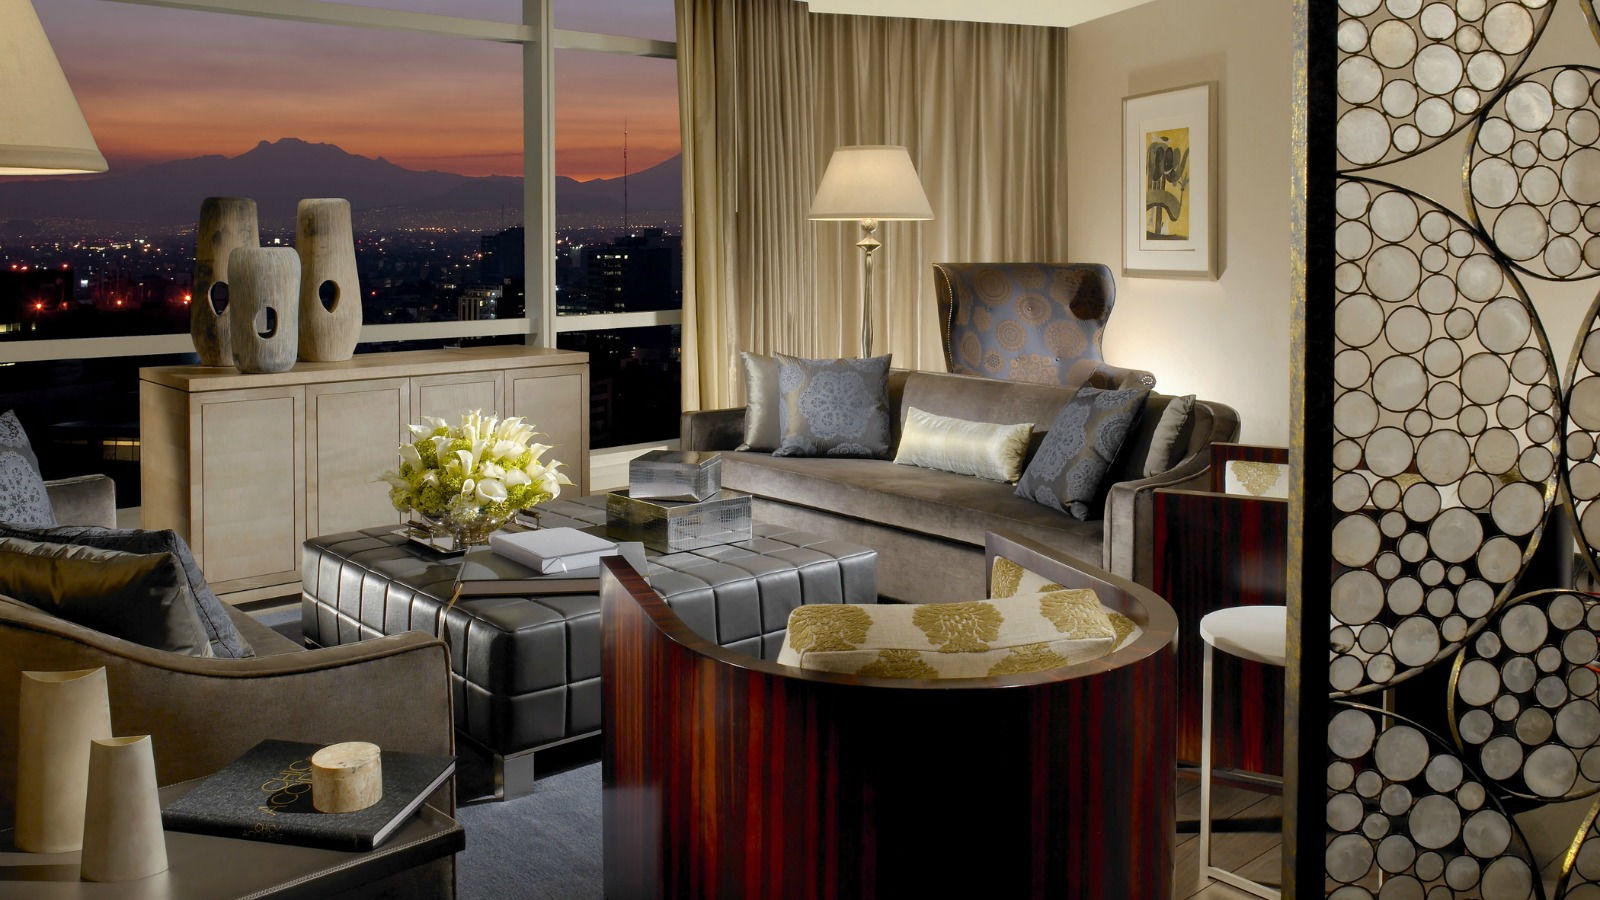 St Regis Suite - St. Regis Mexico City